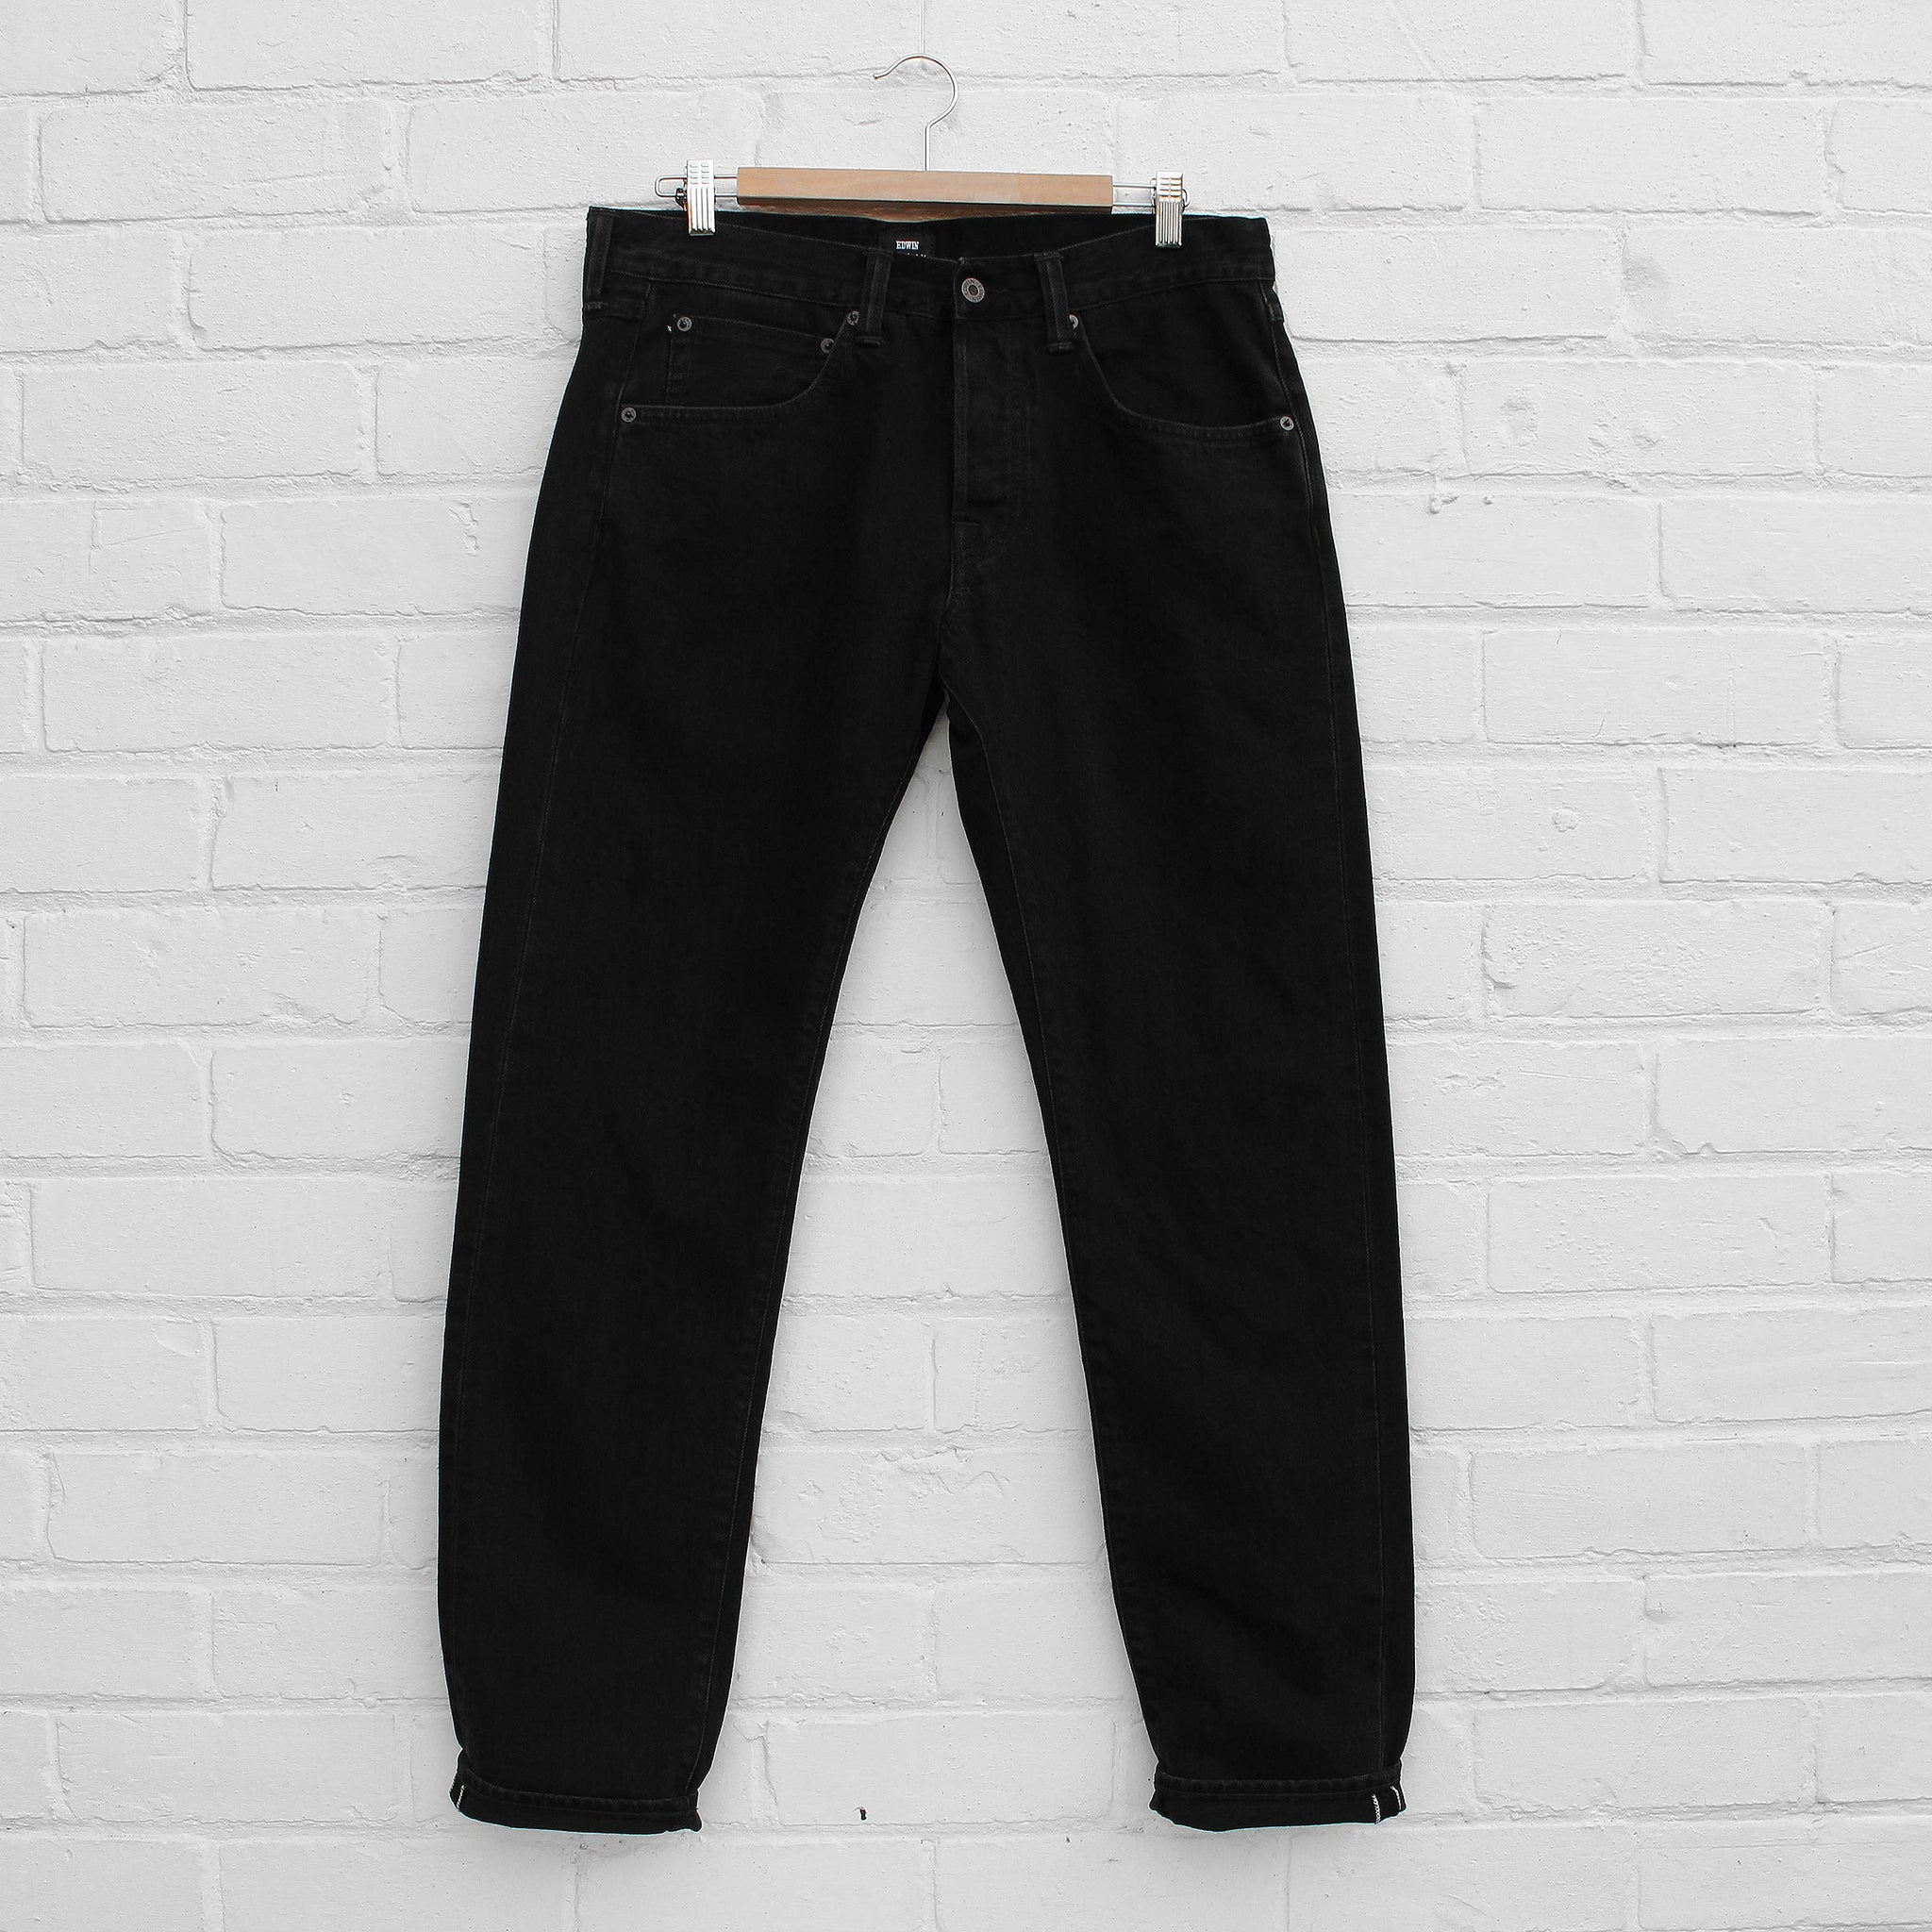 EDWIN ED-55 Red Selvage Ragny Wash